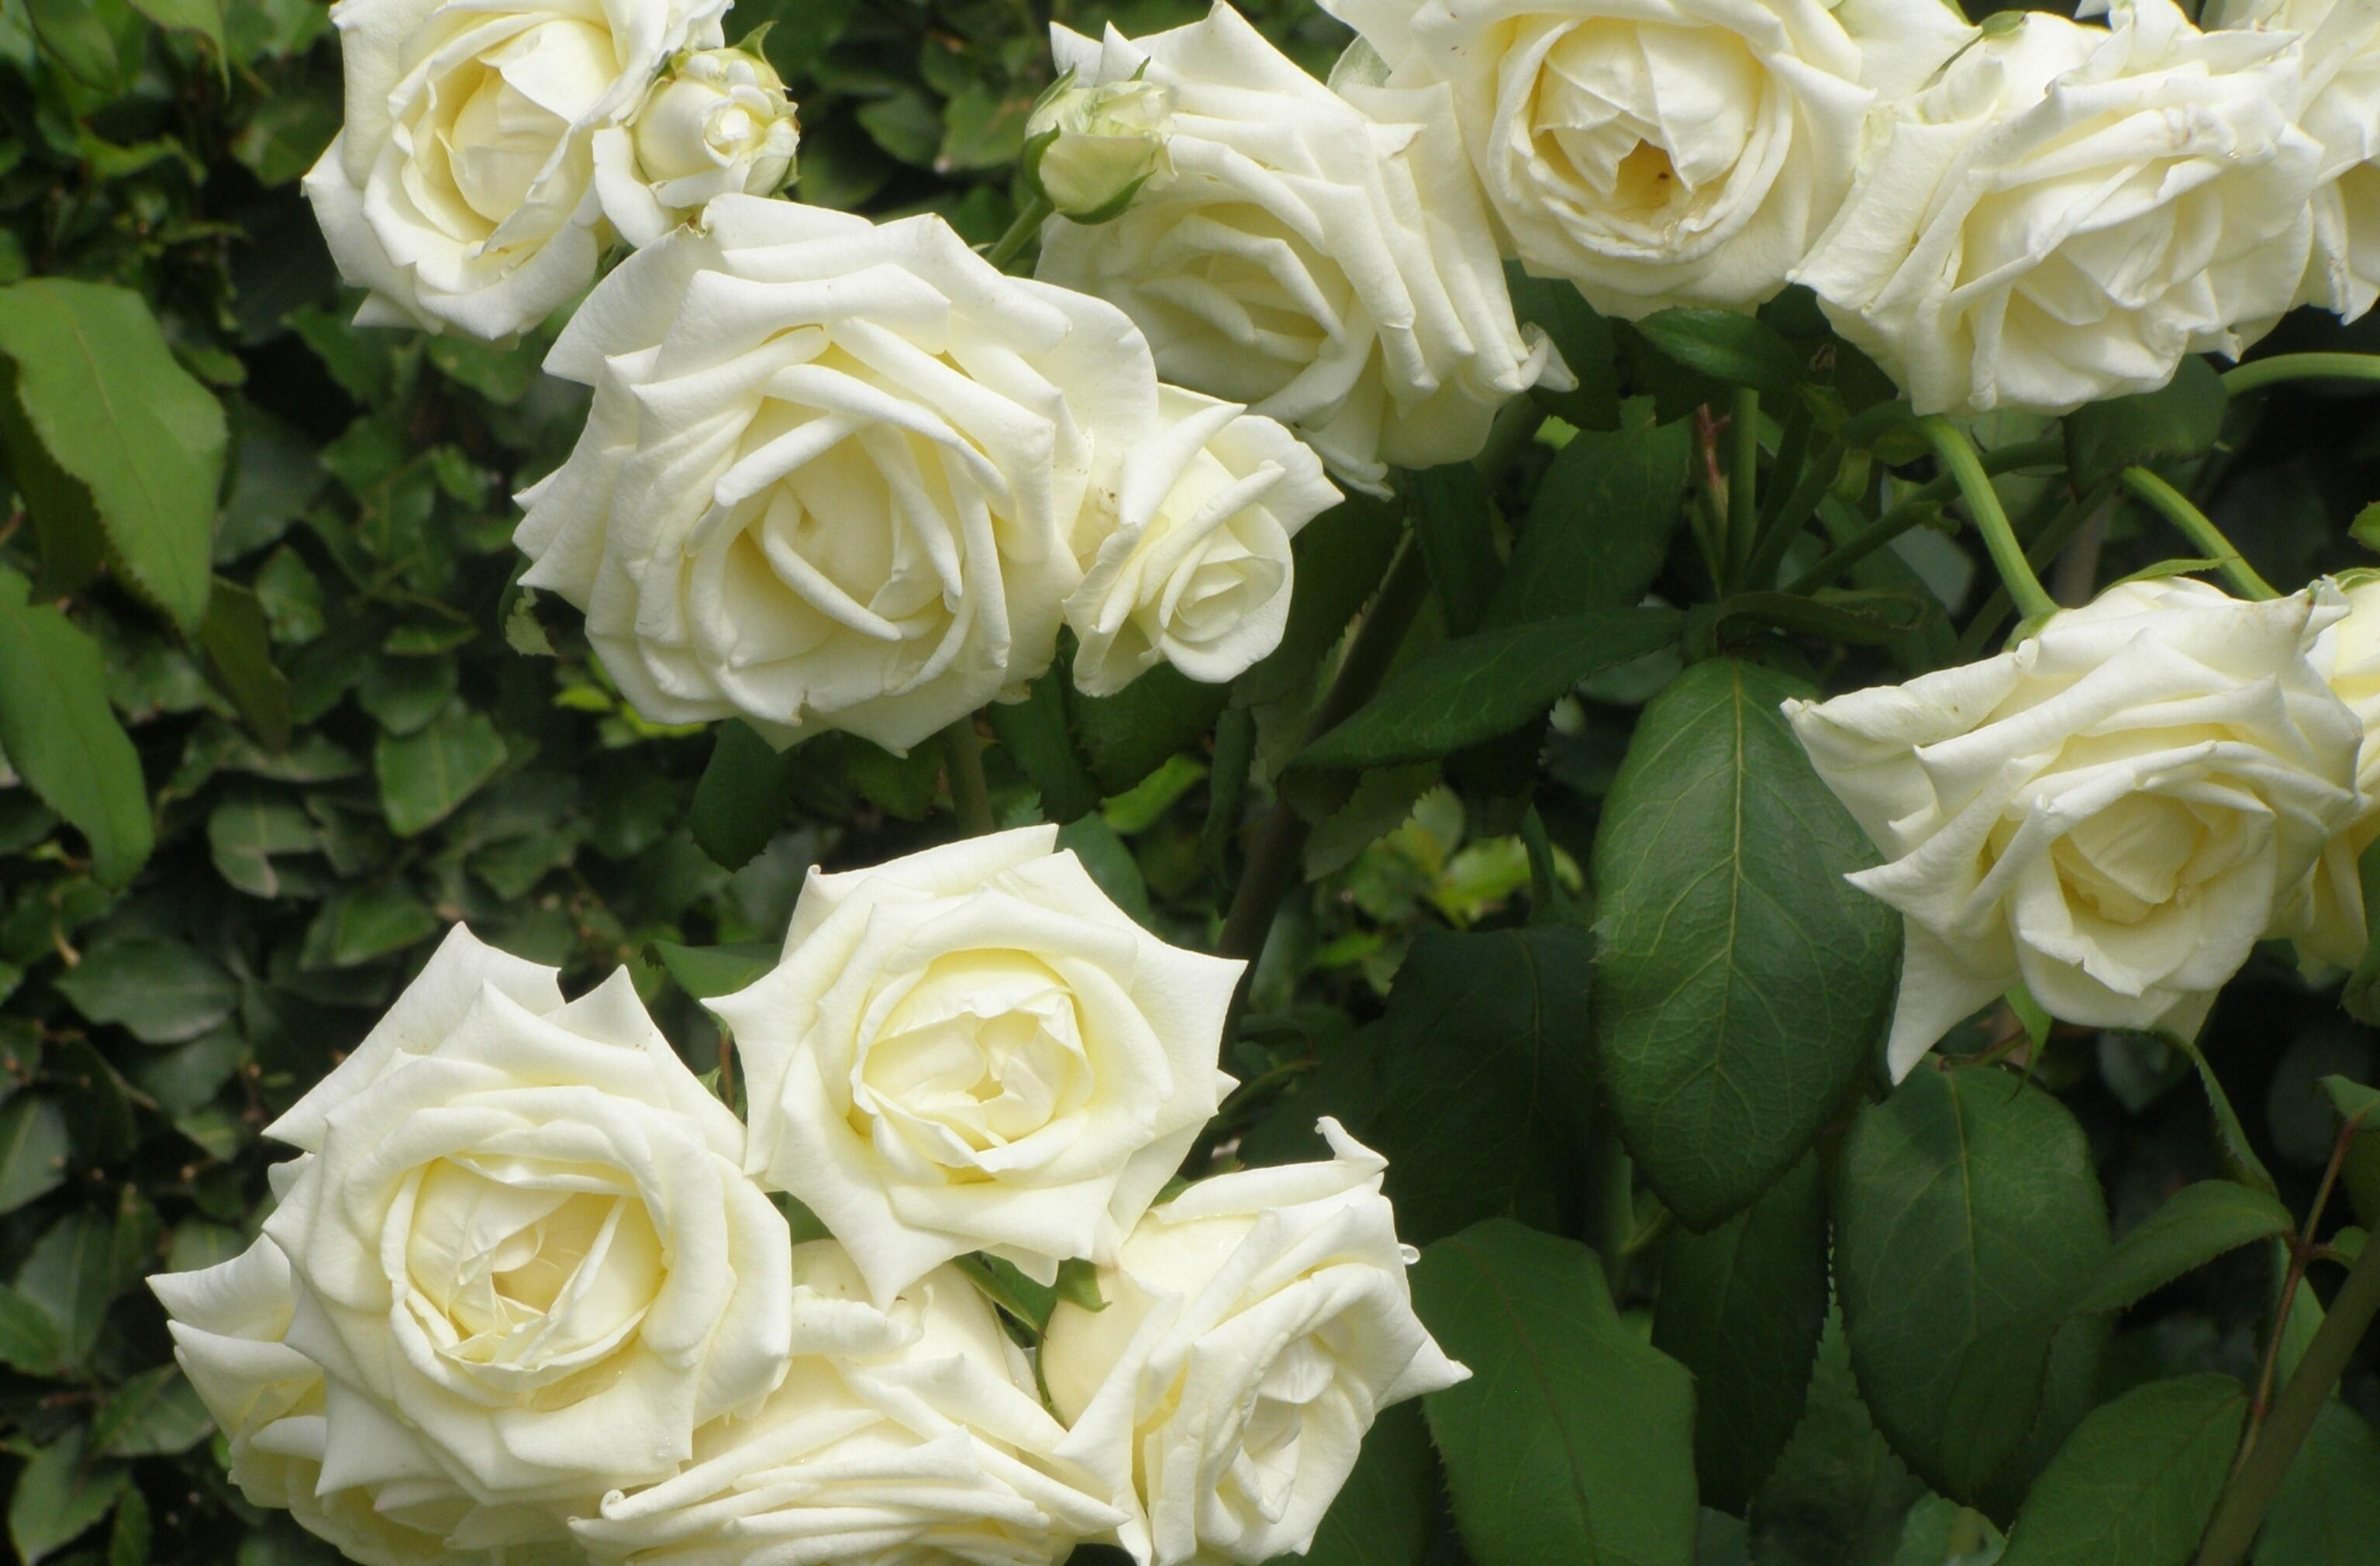 110340 download wallpaper Flowers, Roses, Summer, Bush, Greens, Garden screensavers and pictures for free